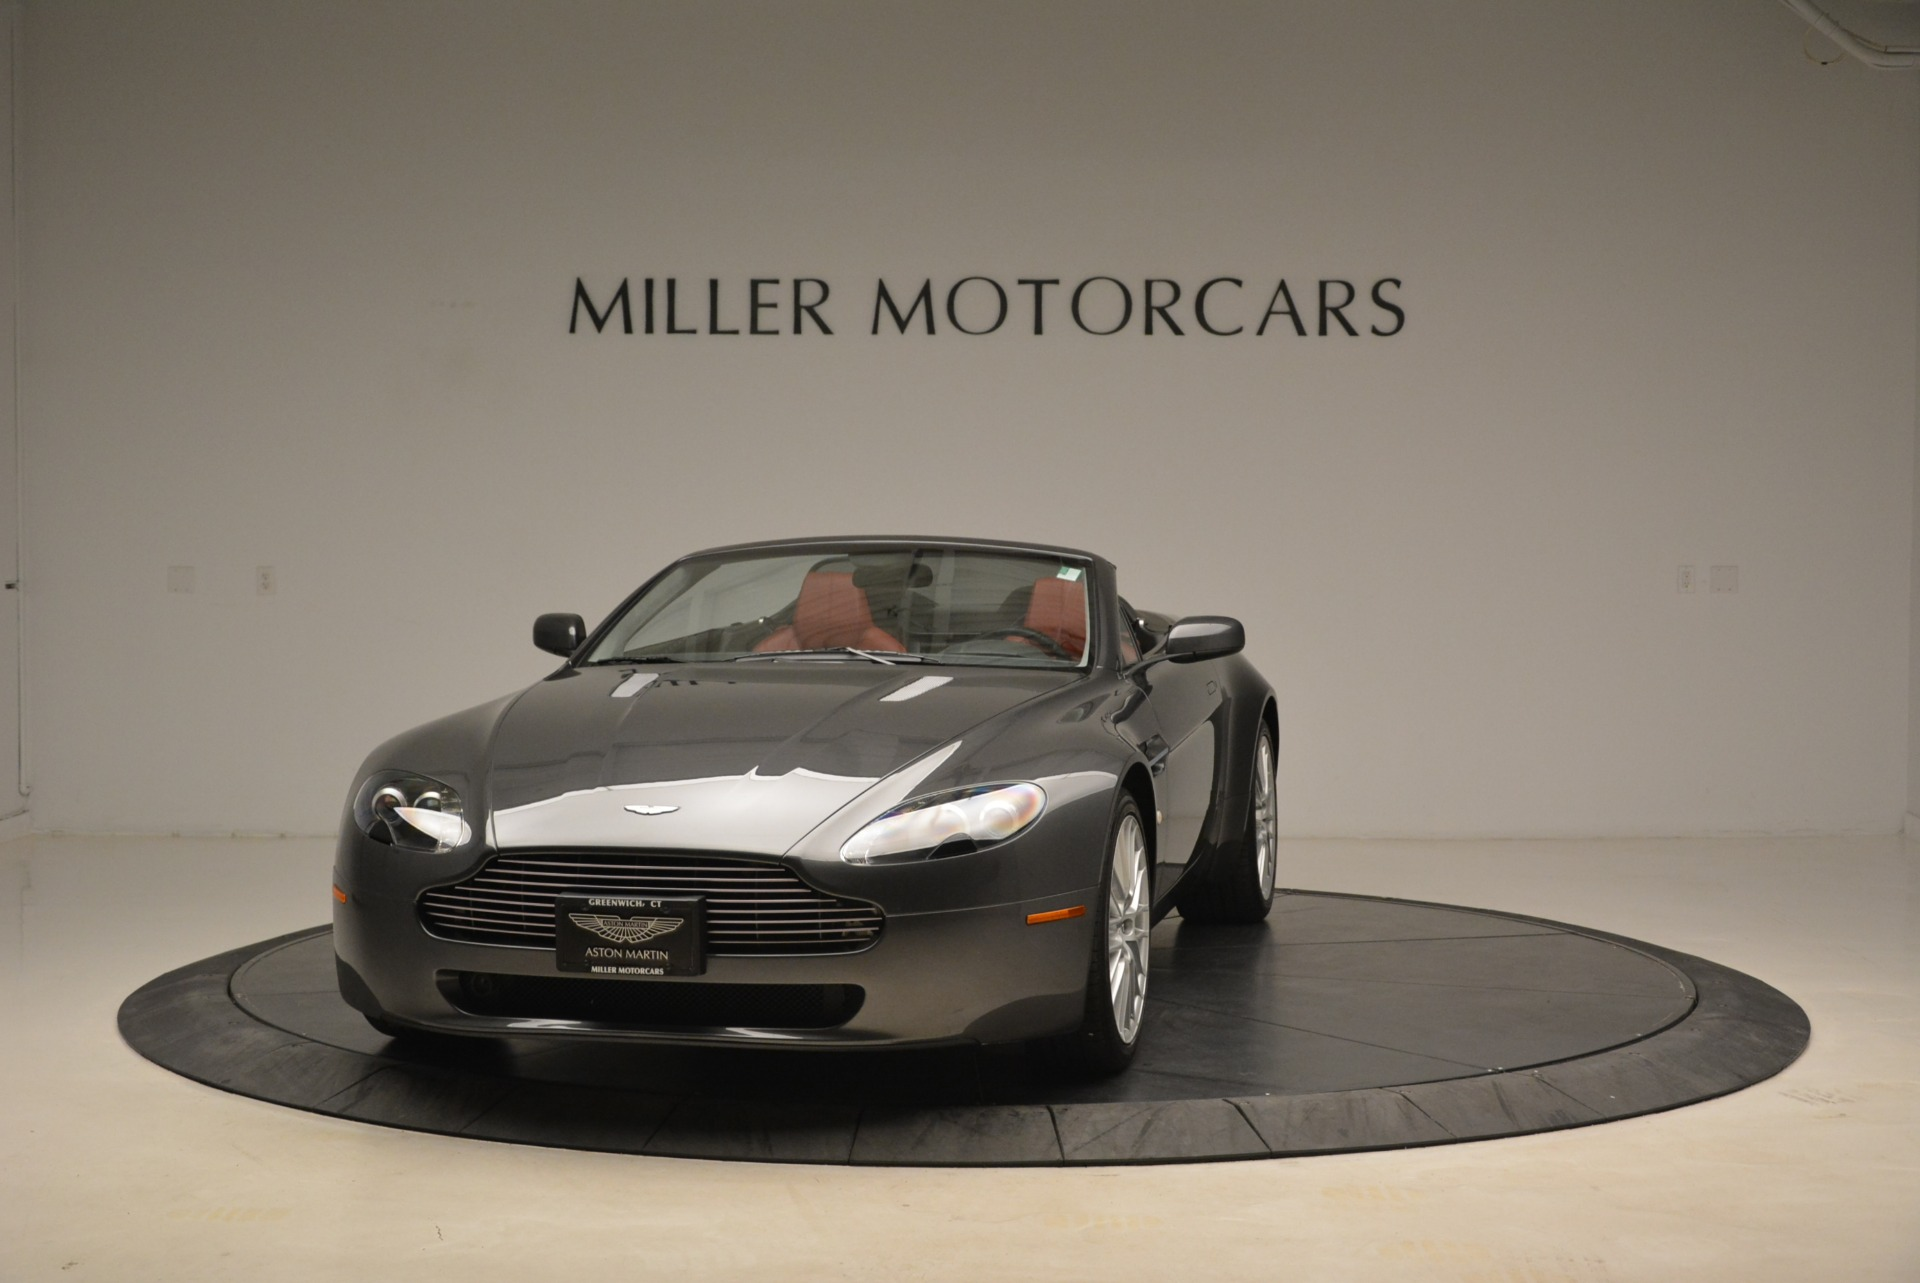 Pre Owned 2009 Aston Martin V8 Vantage Roadster For Sale 52 900 Aston Martin Of Greenwich Stock 7333